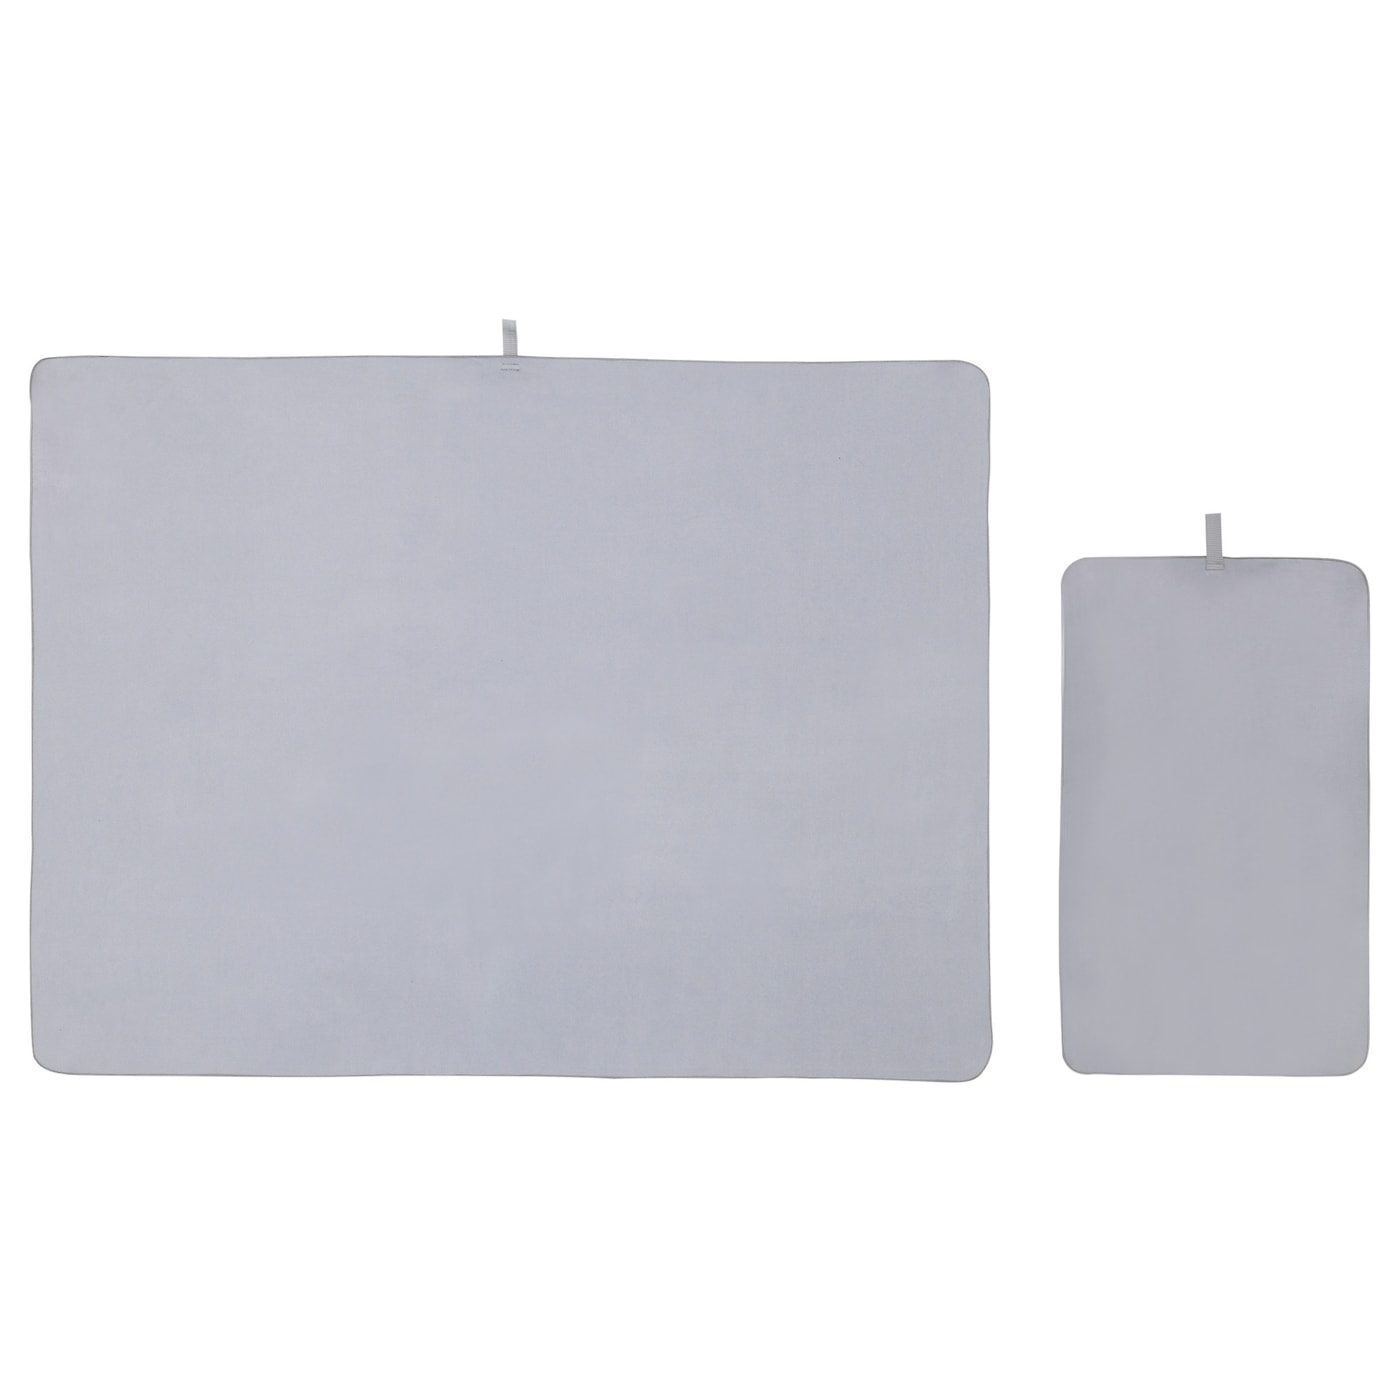 IKEA VINTER 2017 travel towel, set of 2 Hard-wearing microfibre which is soft and smooth.